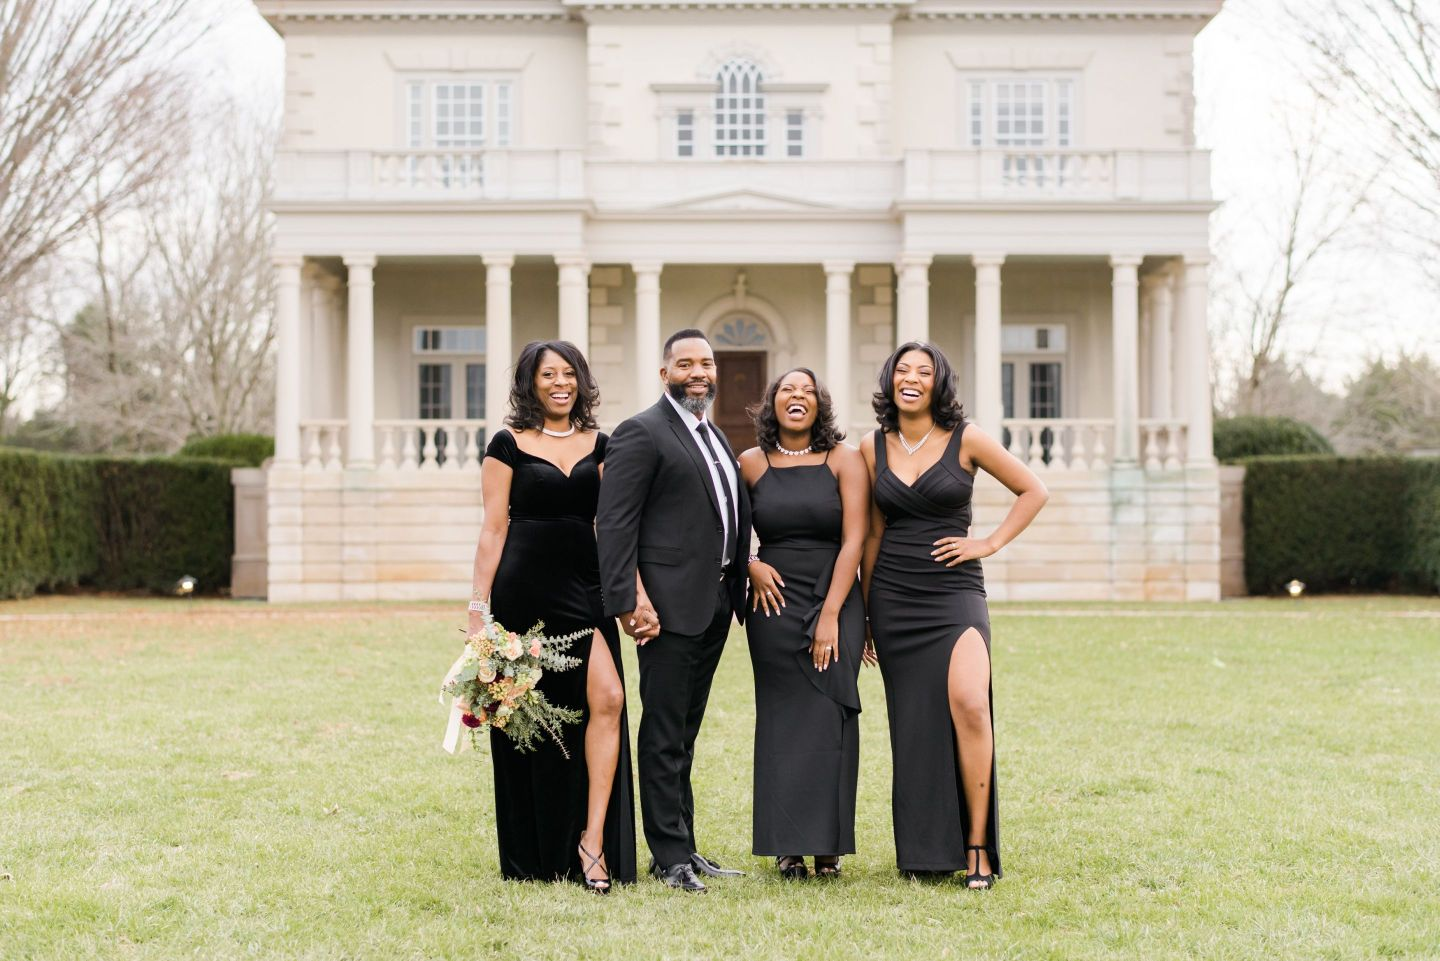 gaines2018-147-1440x961 Southern Black Love: 25 Anniversary Shoot with the Gaines Family